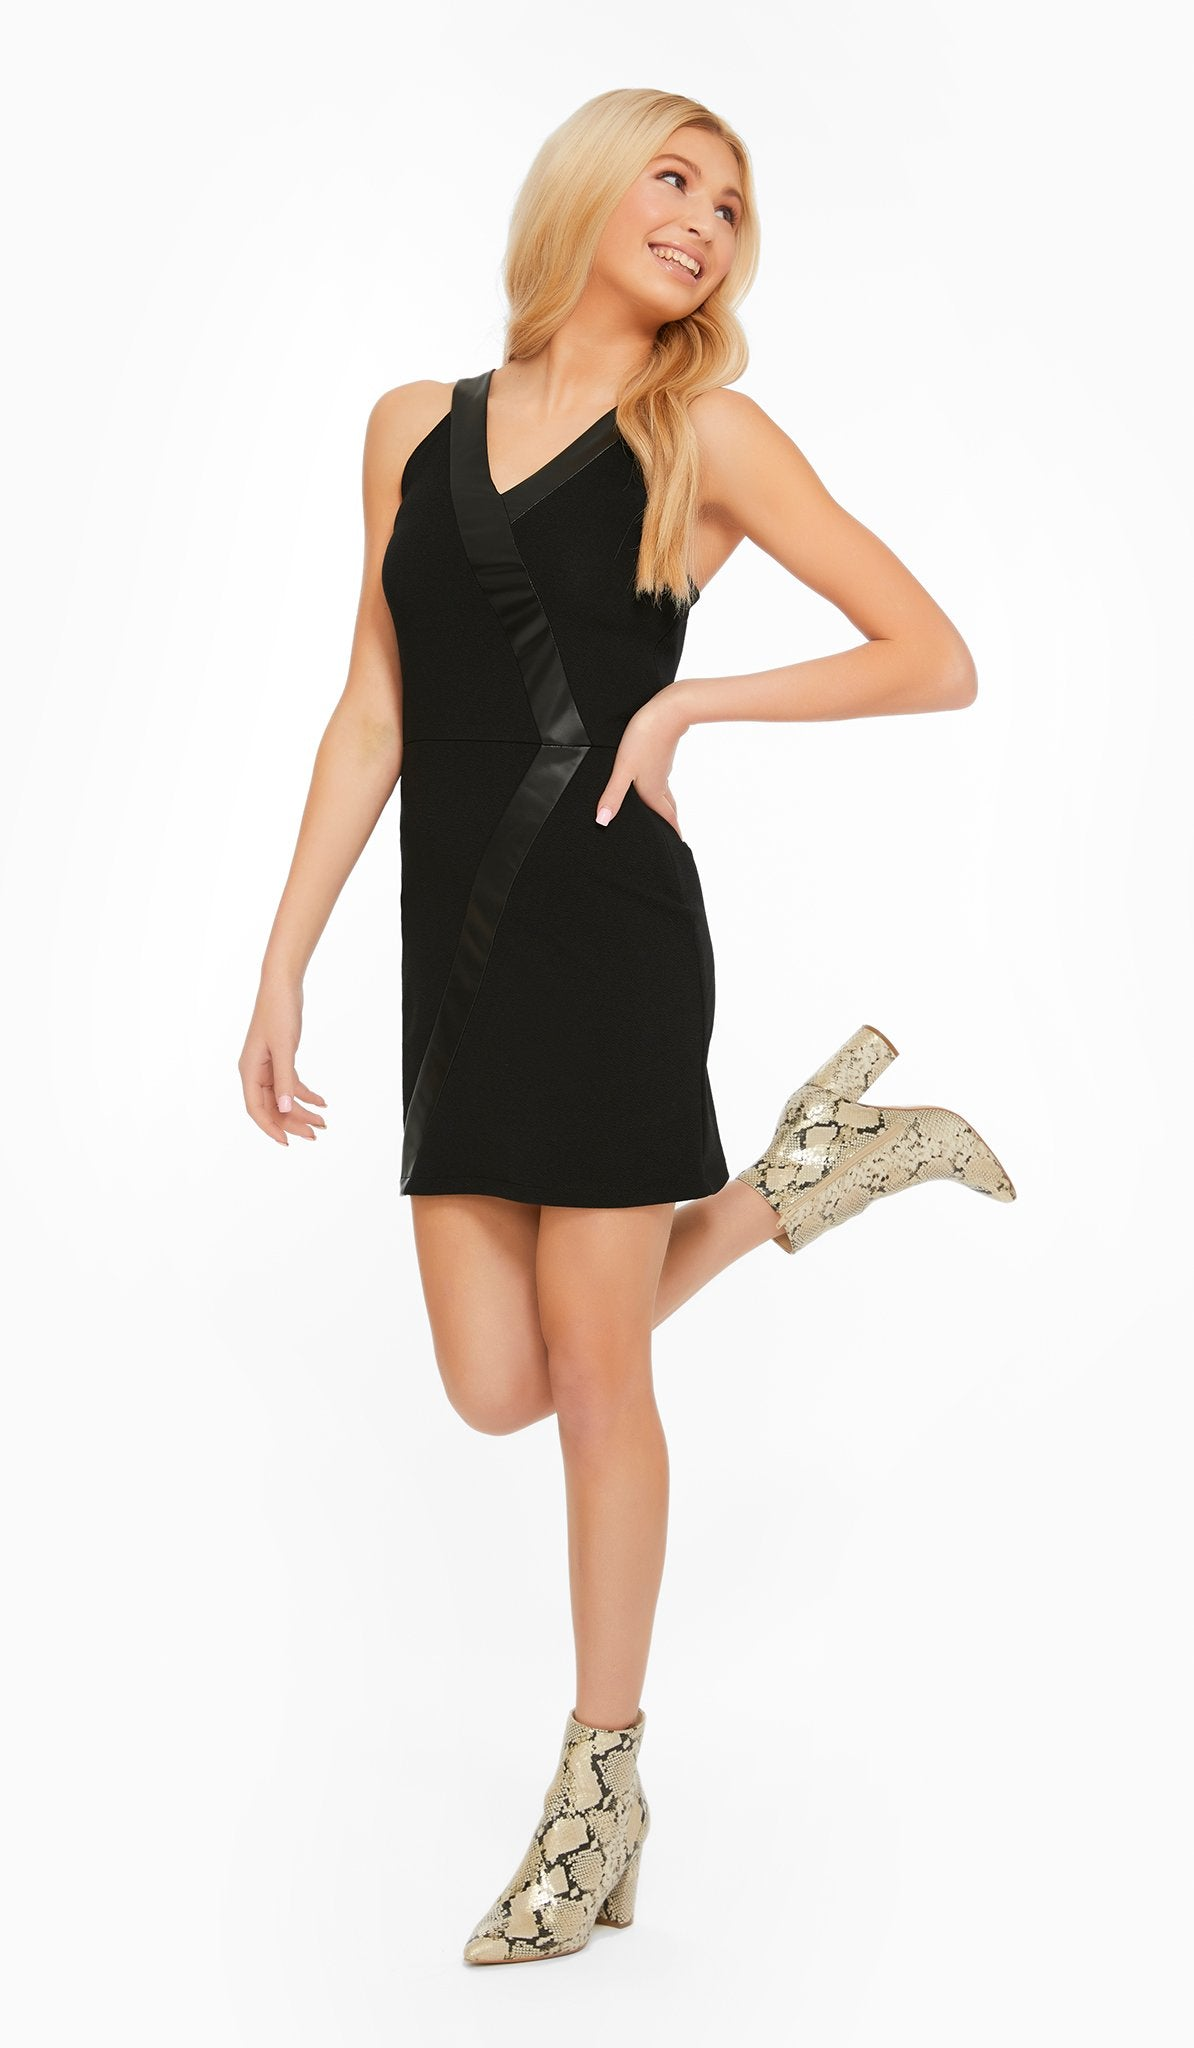 The Sally Miller Tuxedo Dress (Juniors) - Black stretch textured knit A-line dress with vegan leather trim detail and side zipper